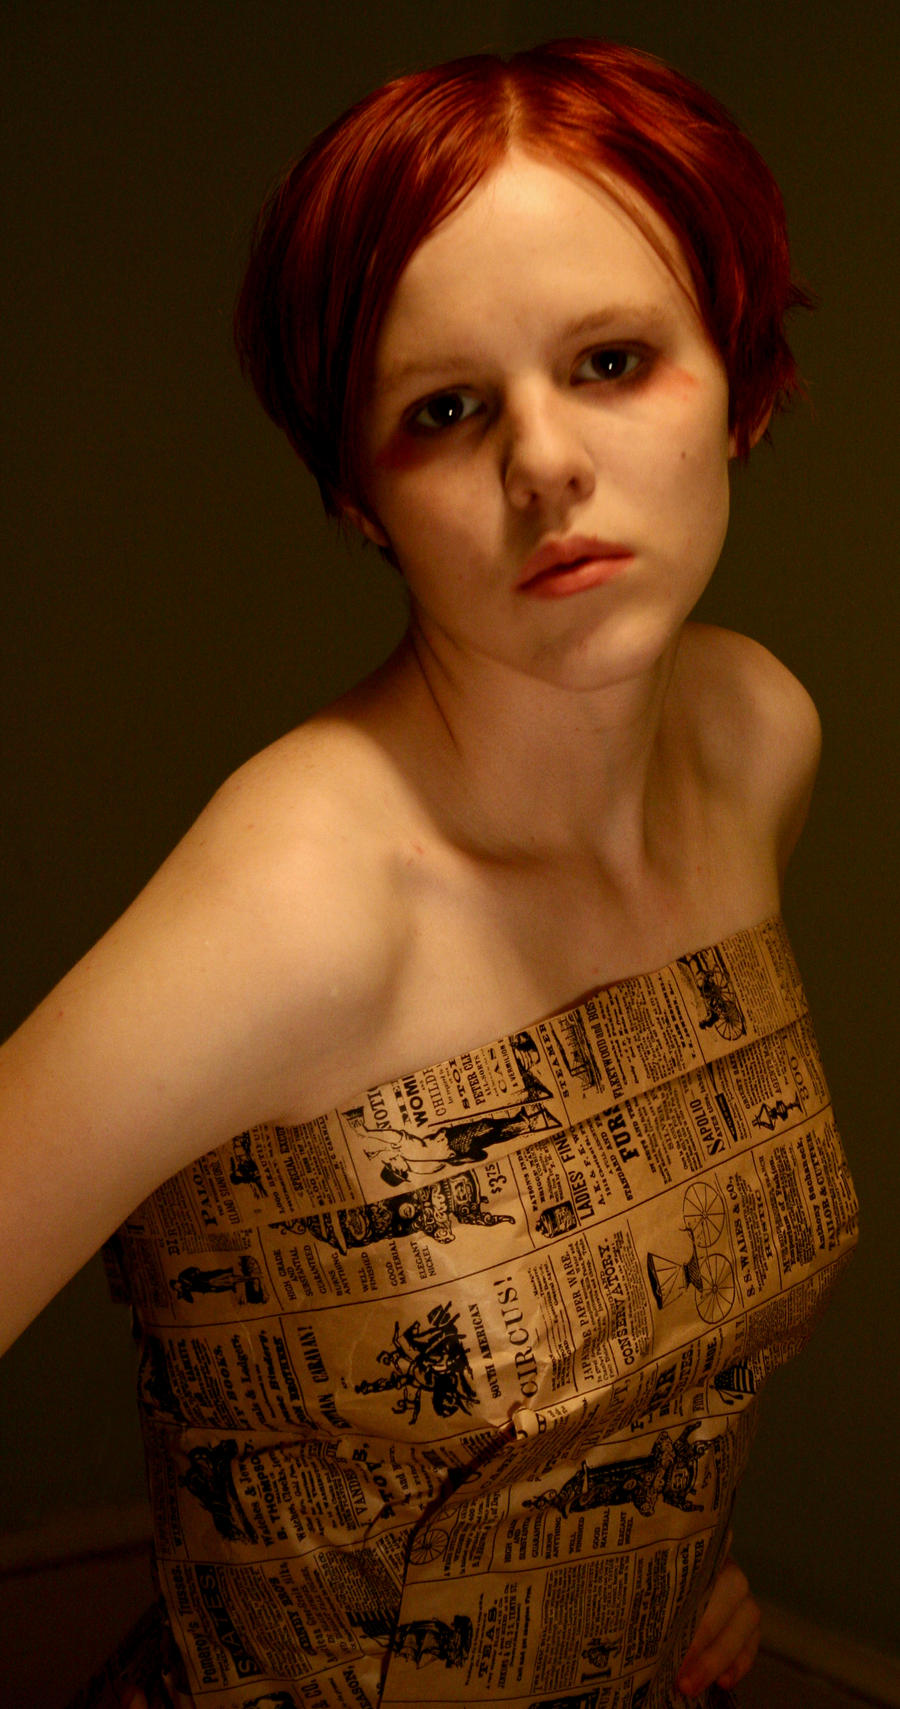 paper bag dress 4 by AttempteStock